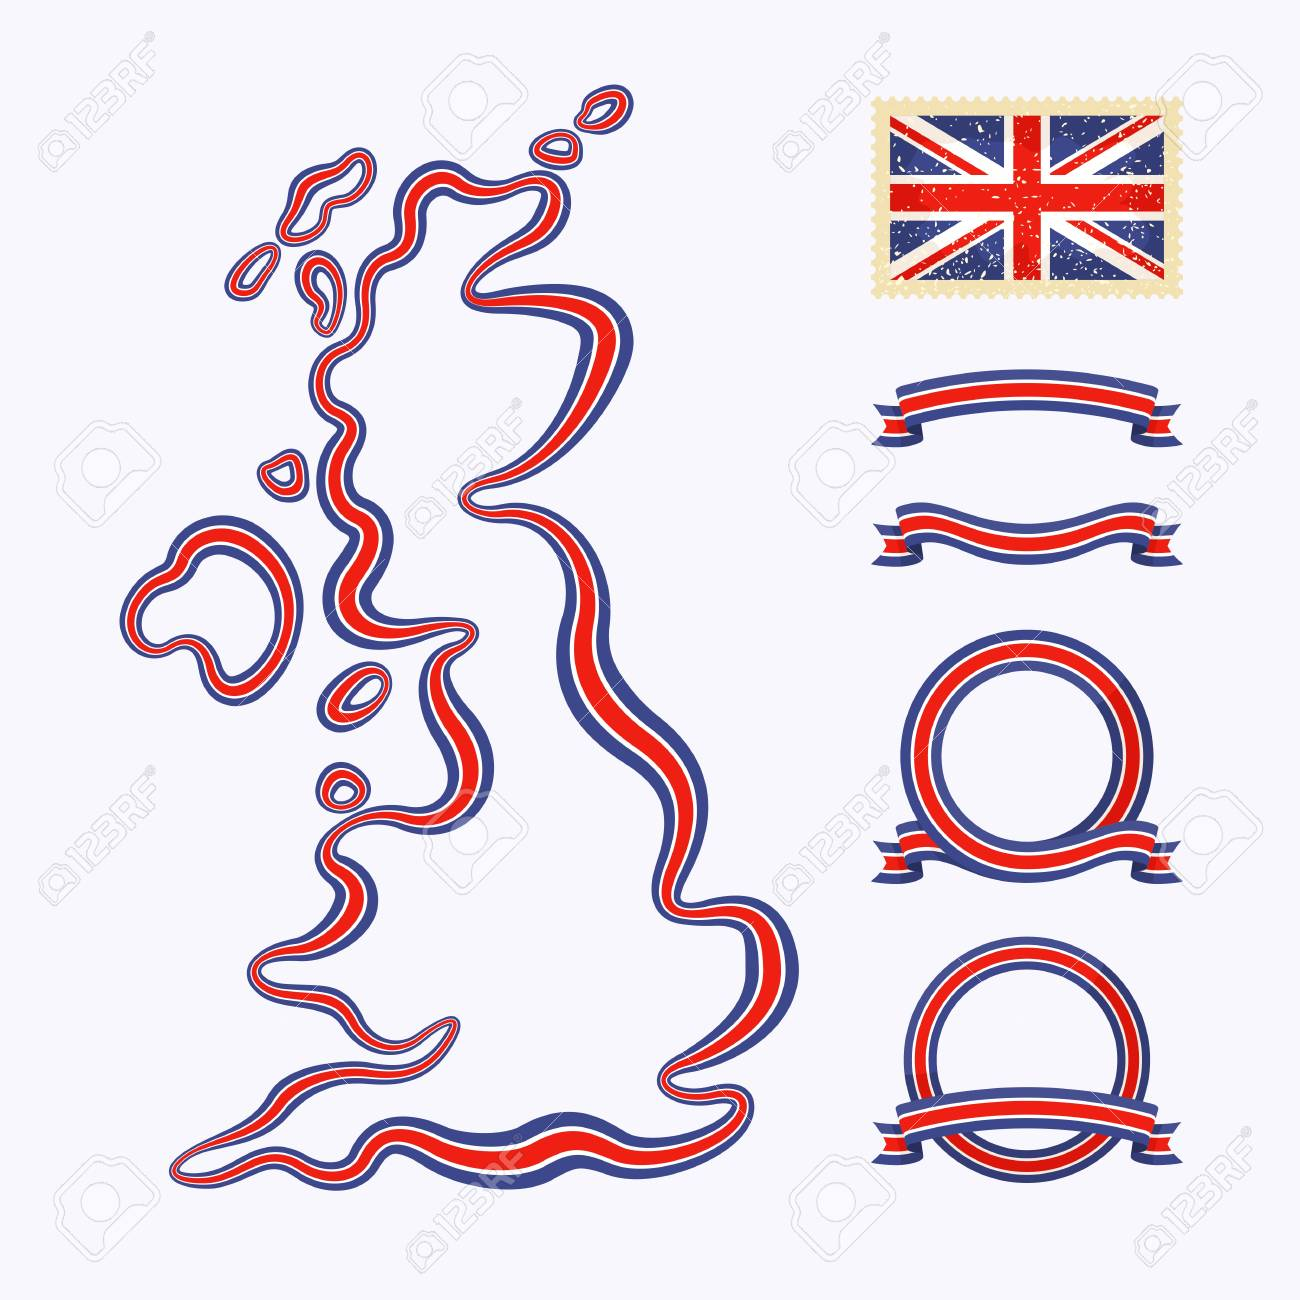 Outline map of United Kingdom  Border is marked with a ribbon in the national colors Stock Vector - 22062869